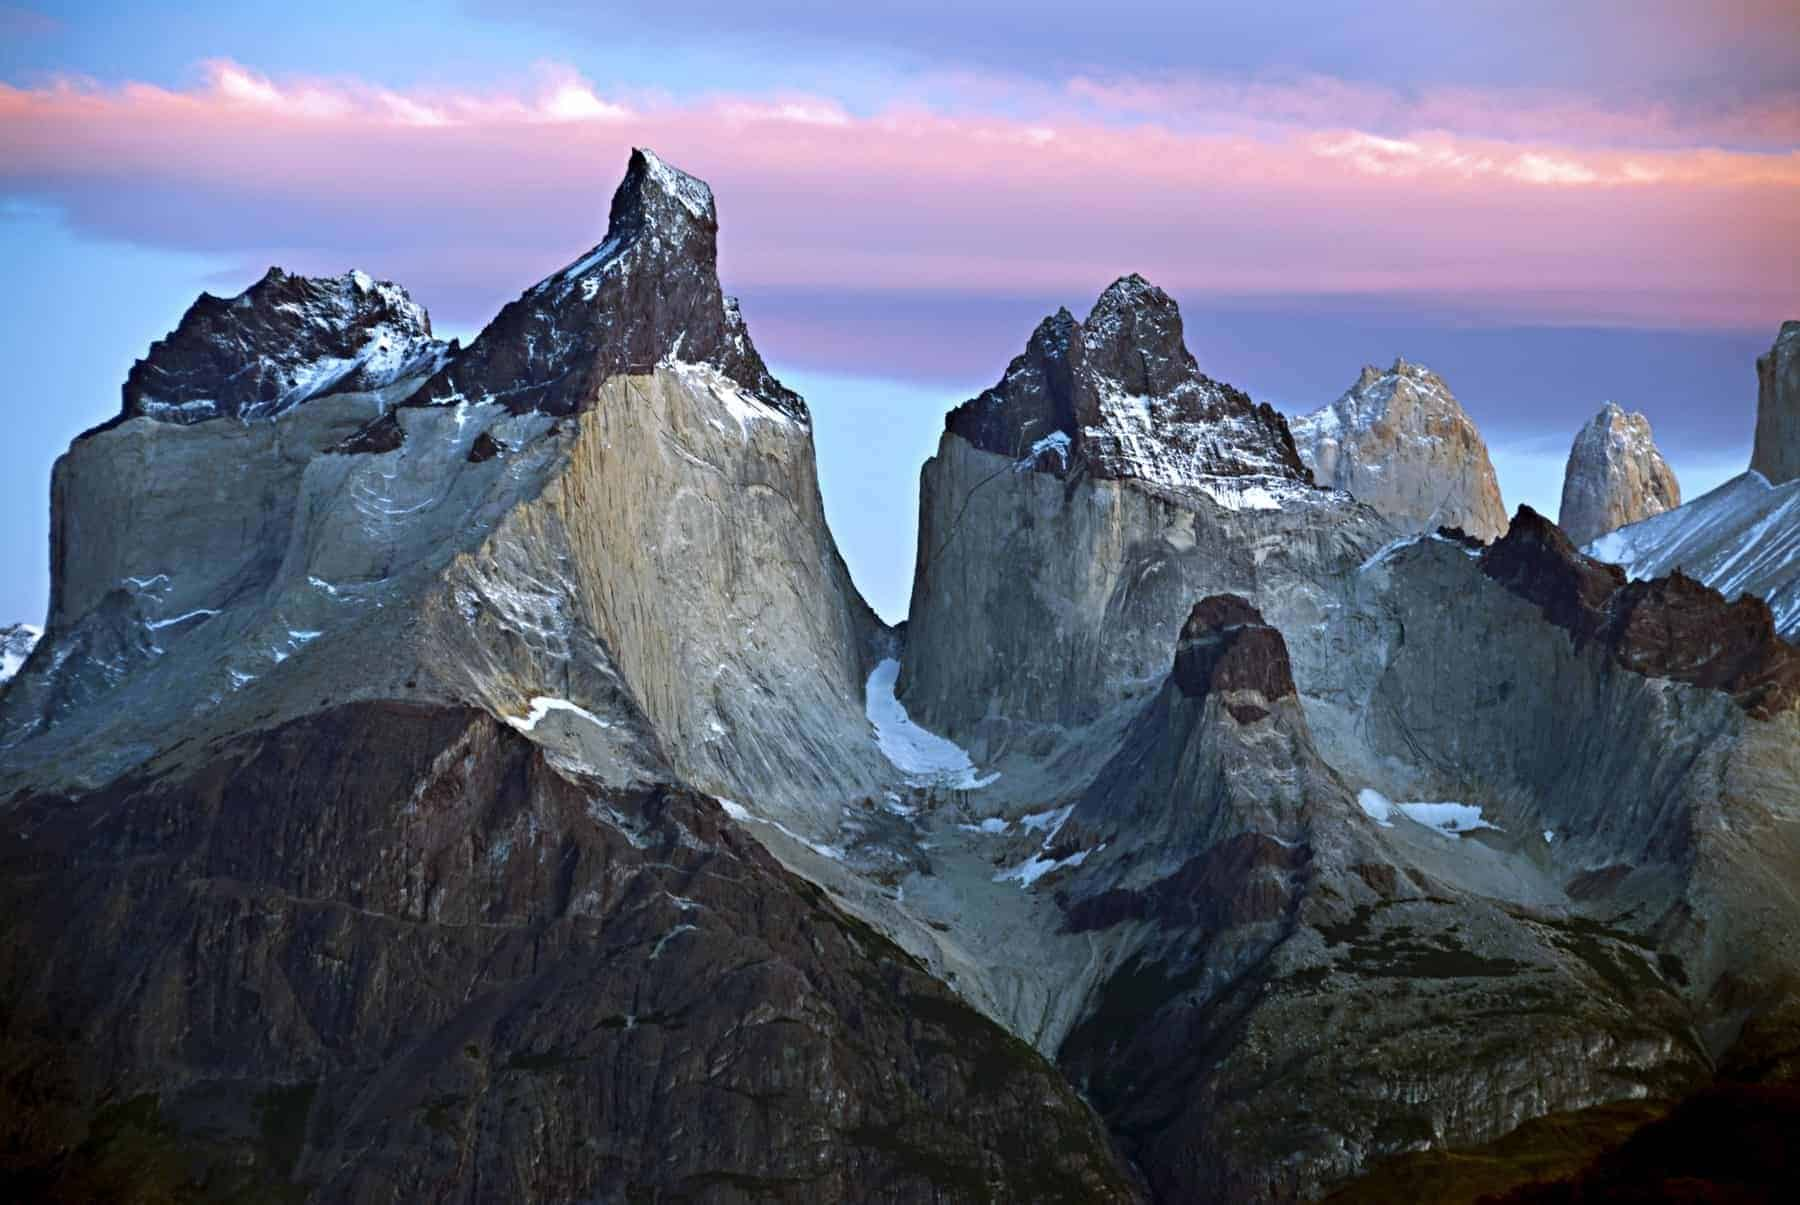 The Cuernos del Paine in Torres del Paine National Park, Chile, at sunrise